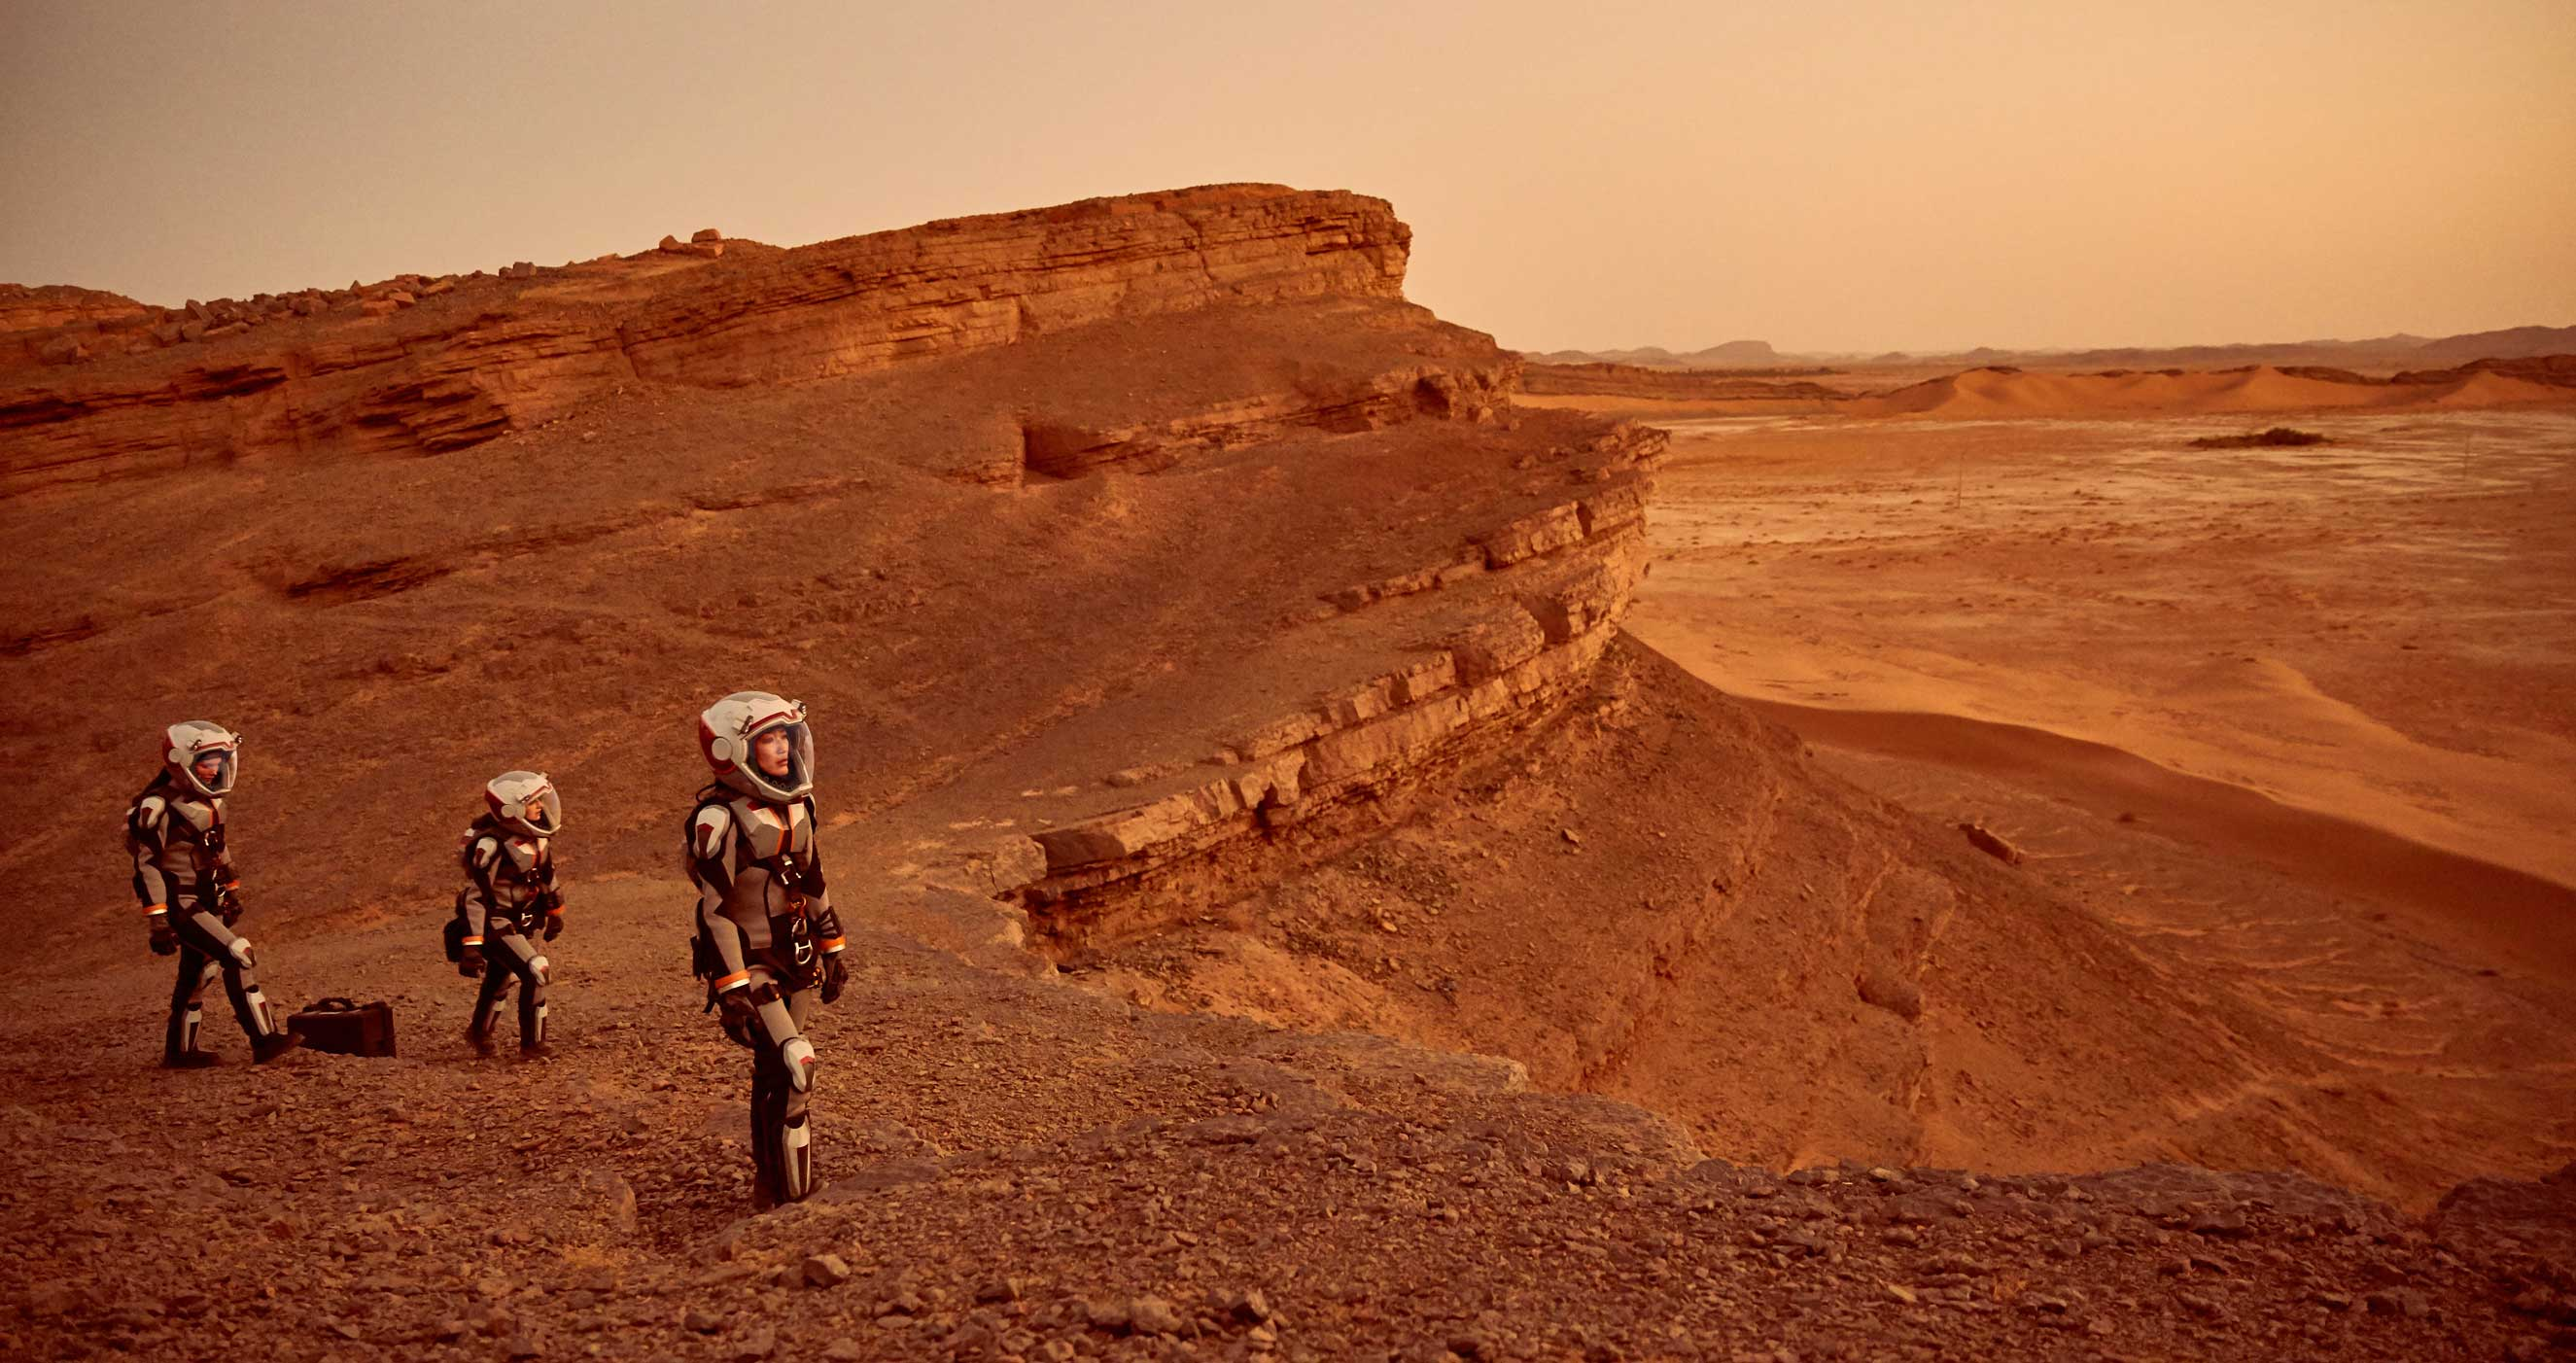 Fictional astronauts land on the Red Planet with technology firmly grounded in current research